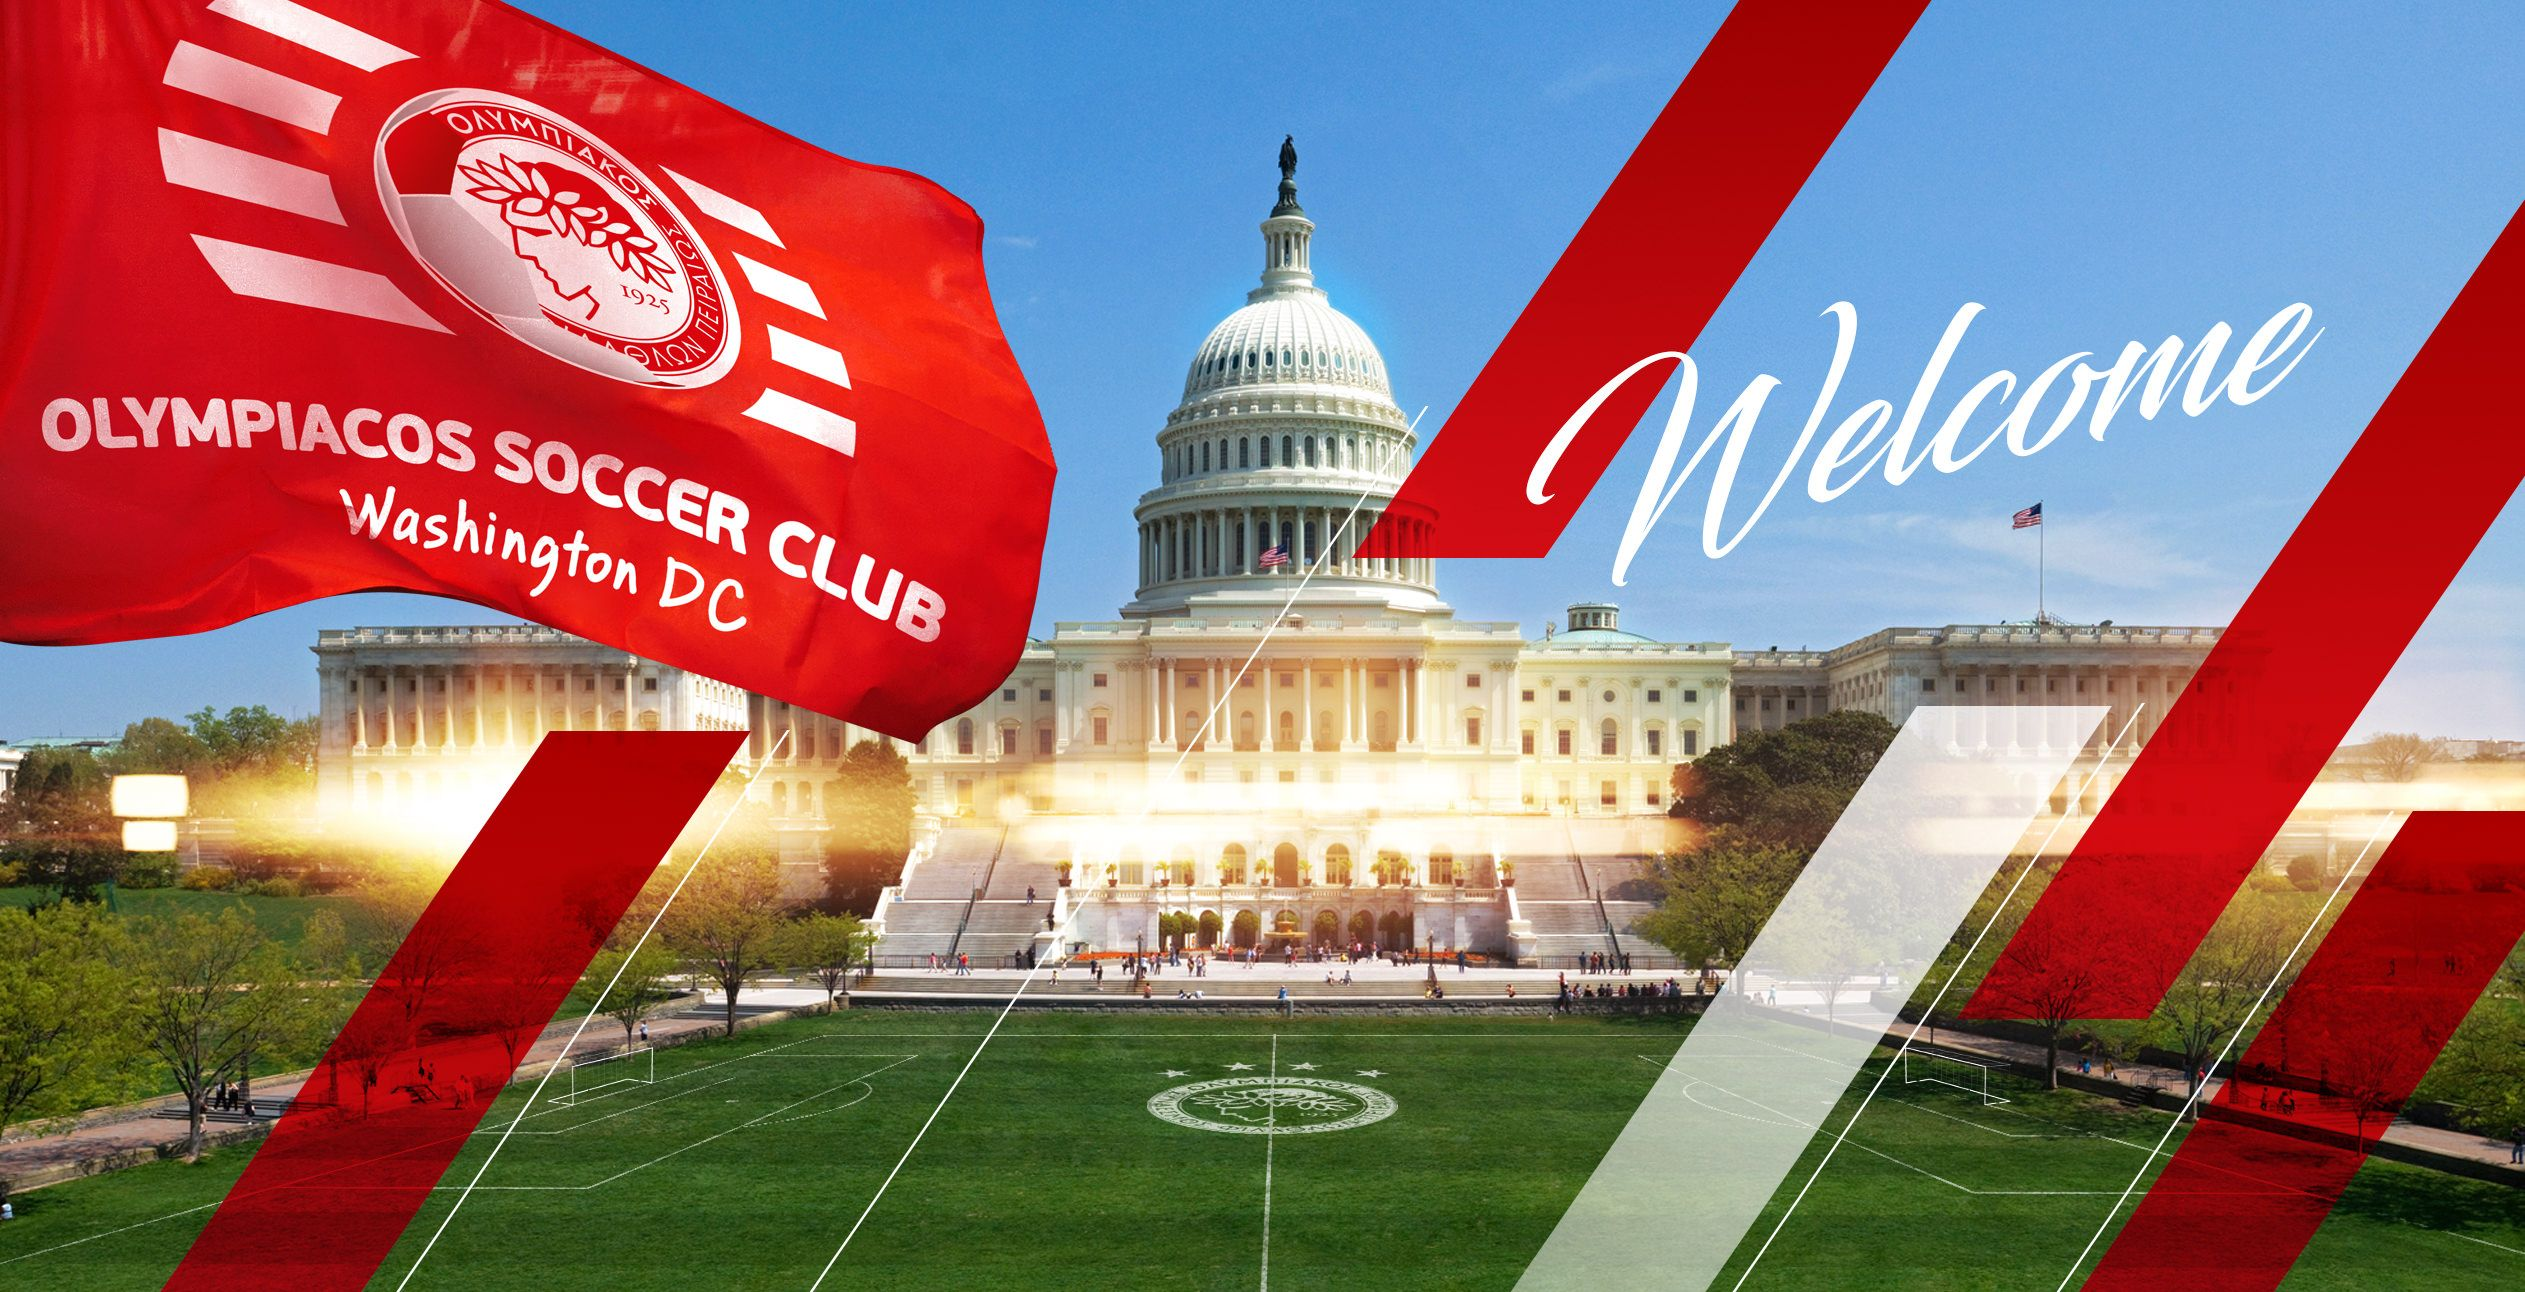 The heart of Olympiacos beats strong in the US capital!